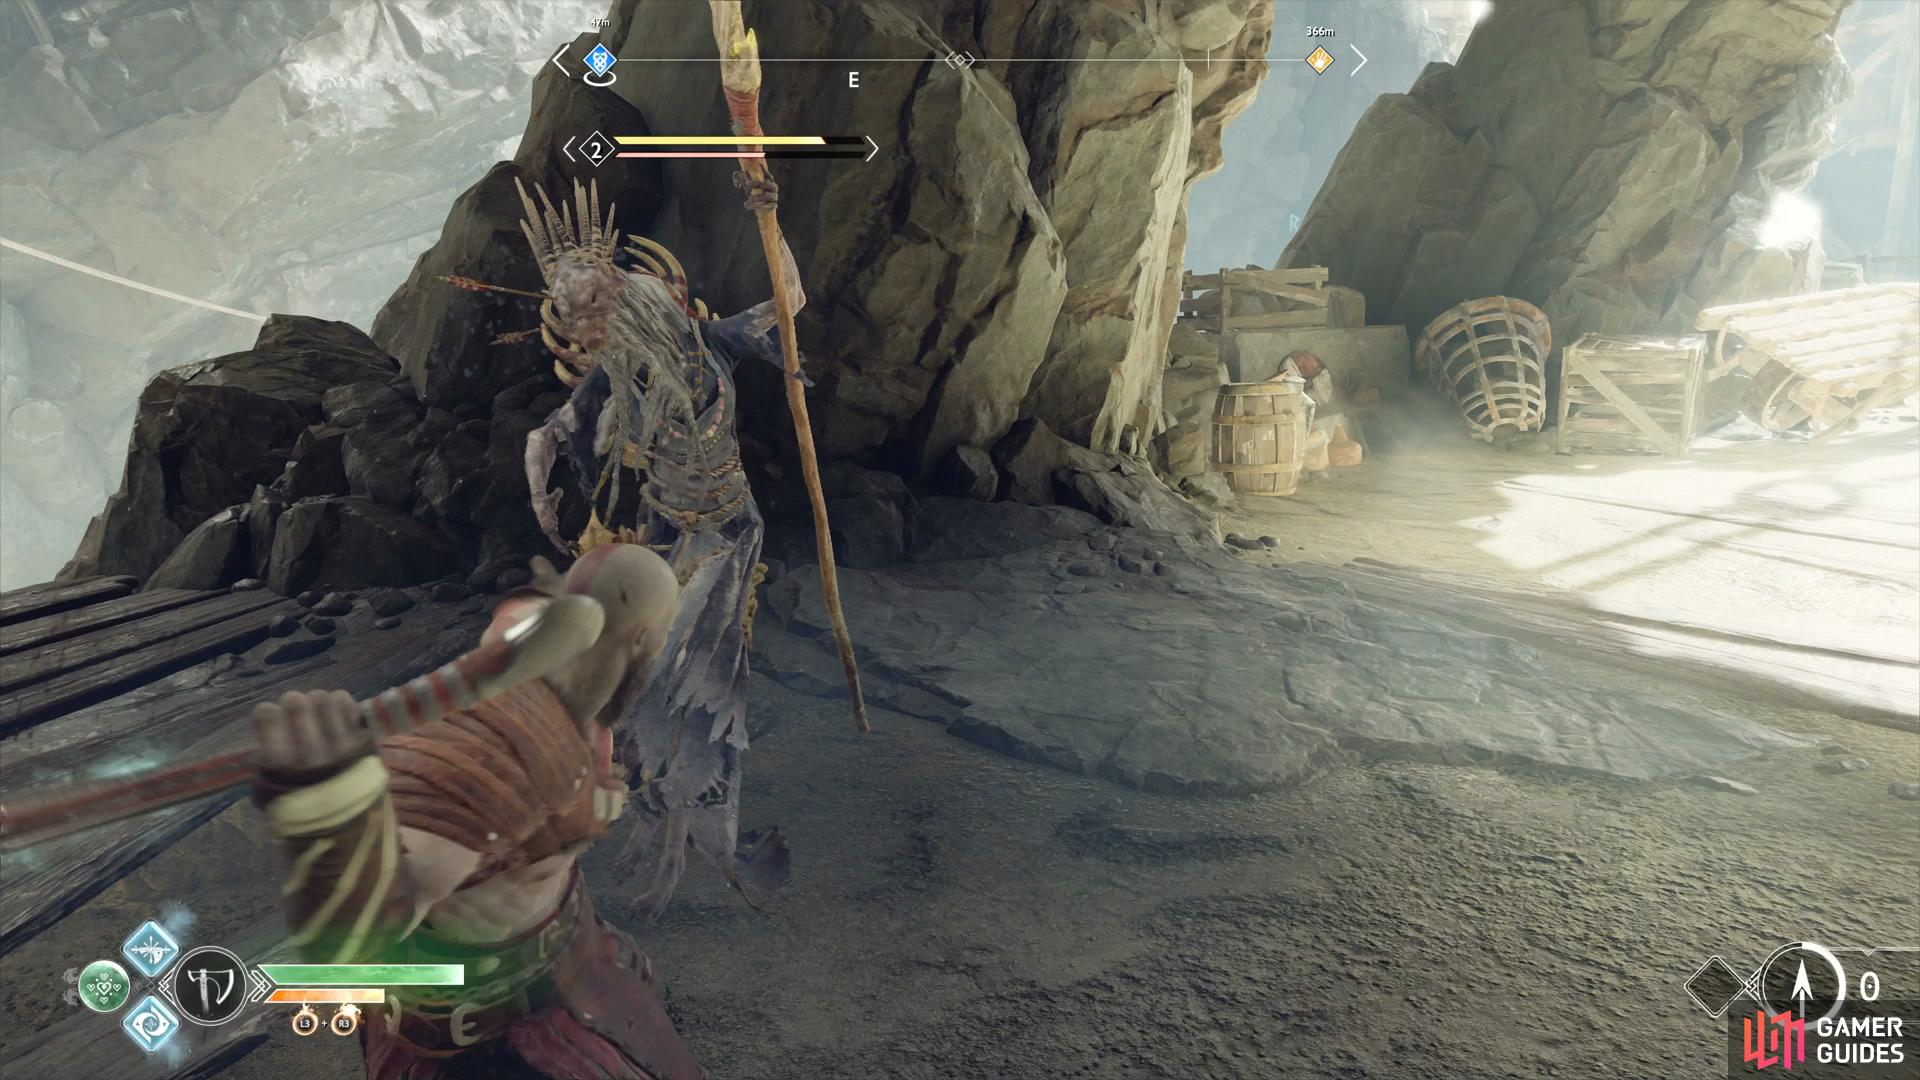 remember to use Atreus to pin the Revenant down with his arrows.